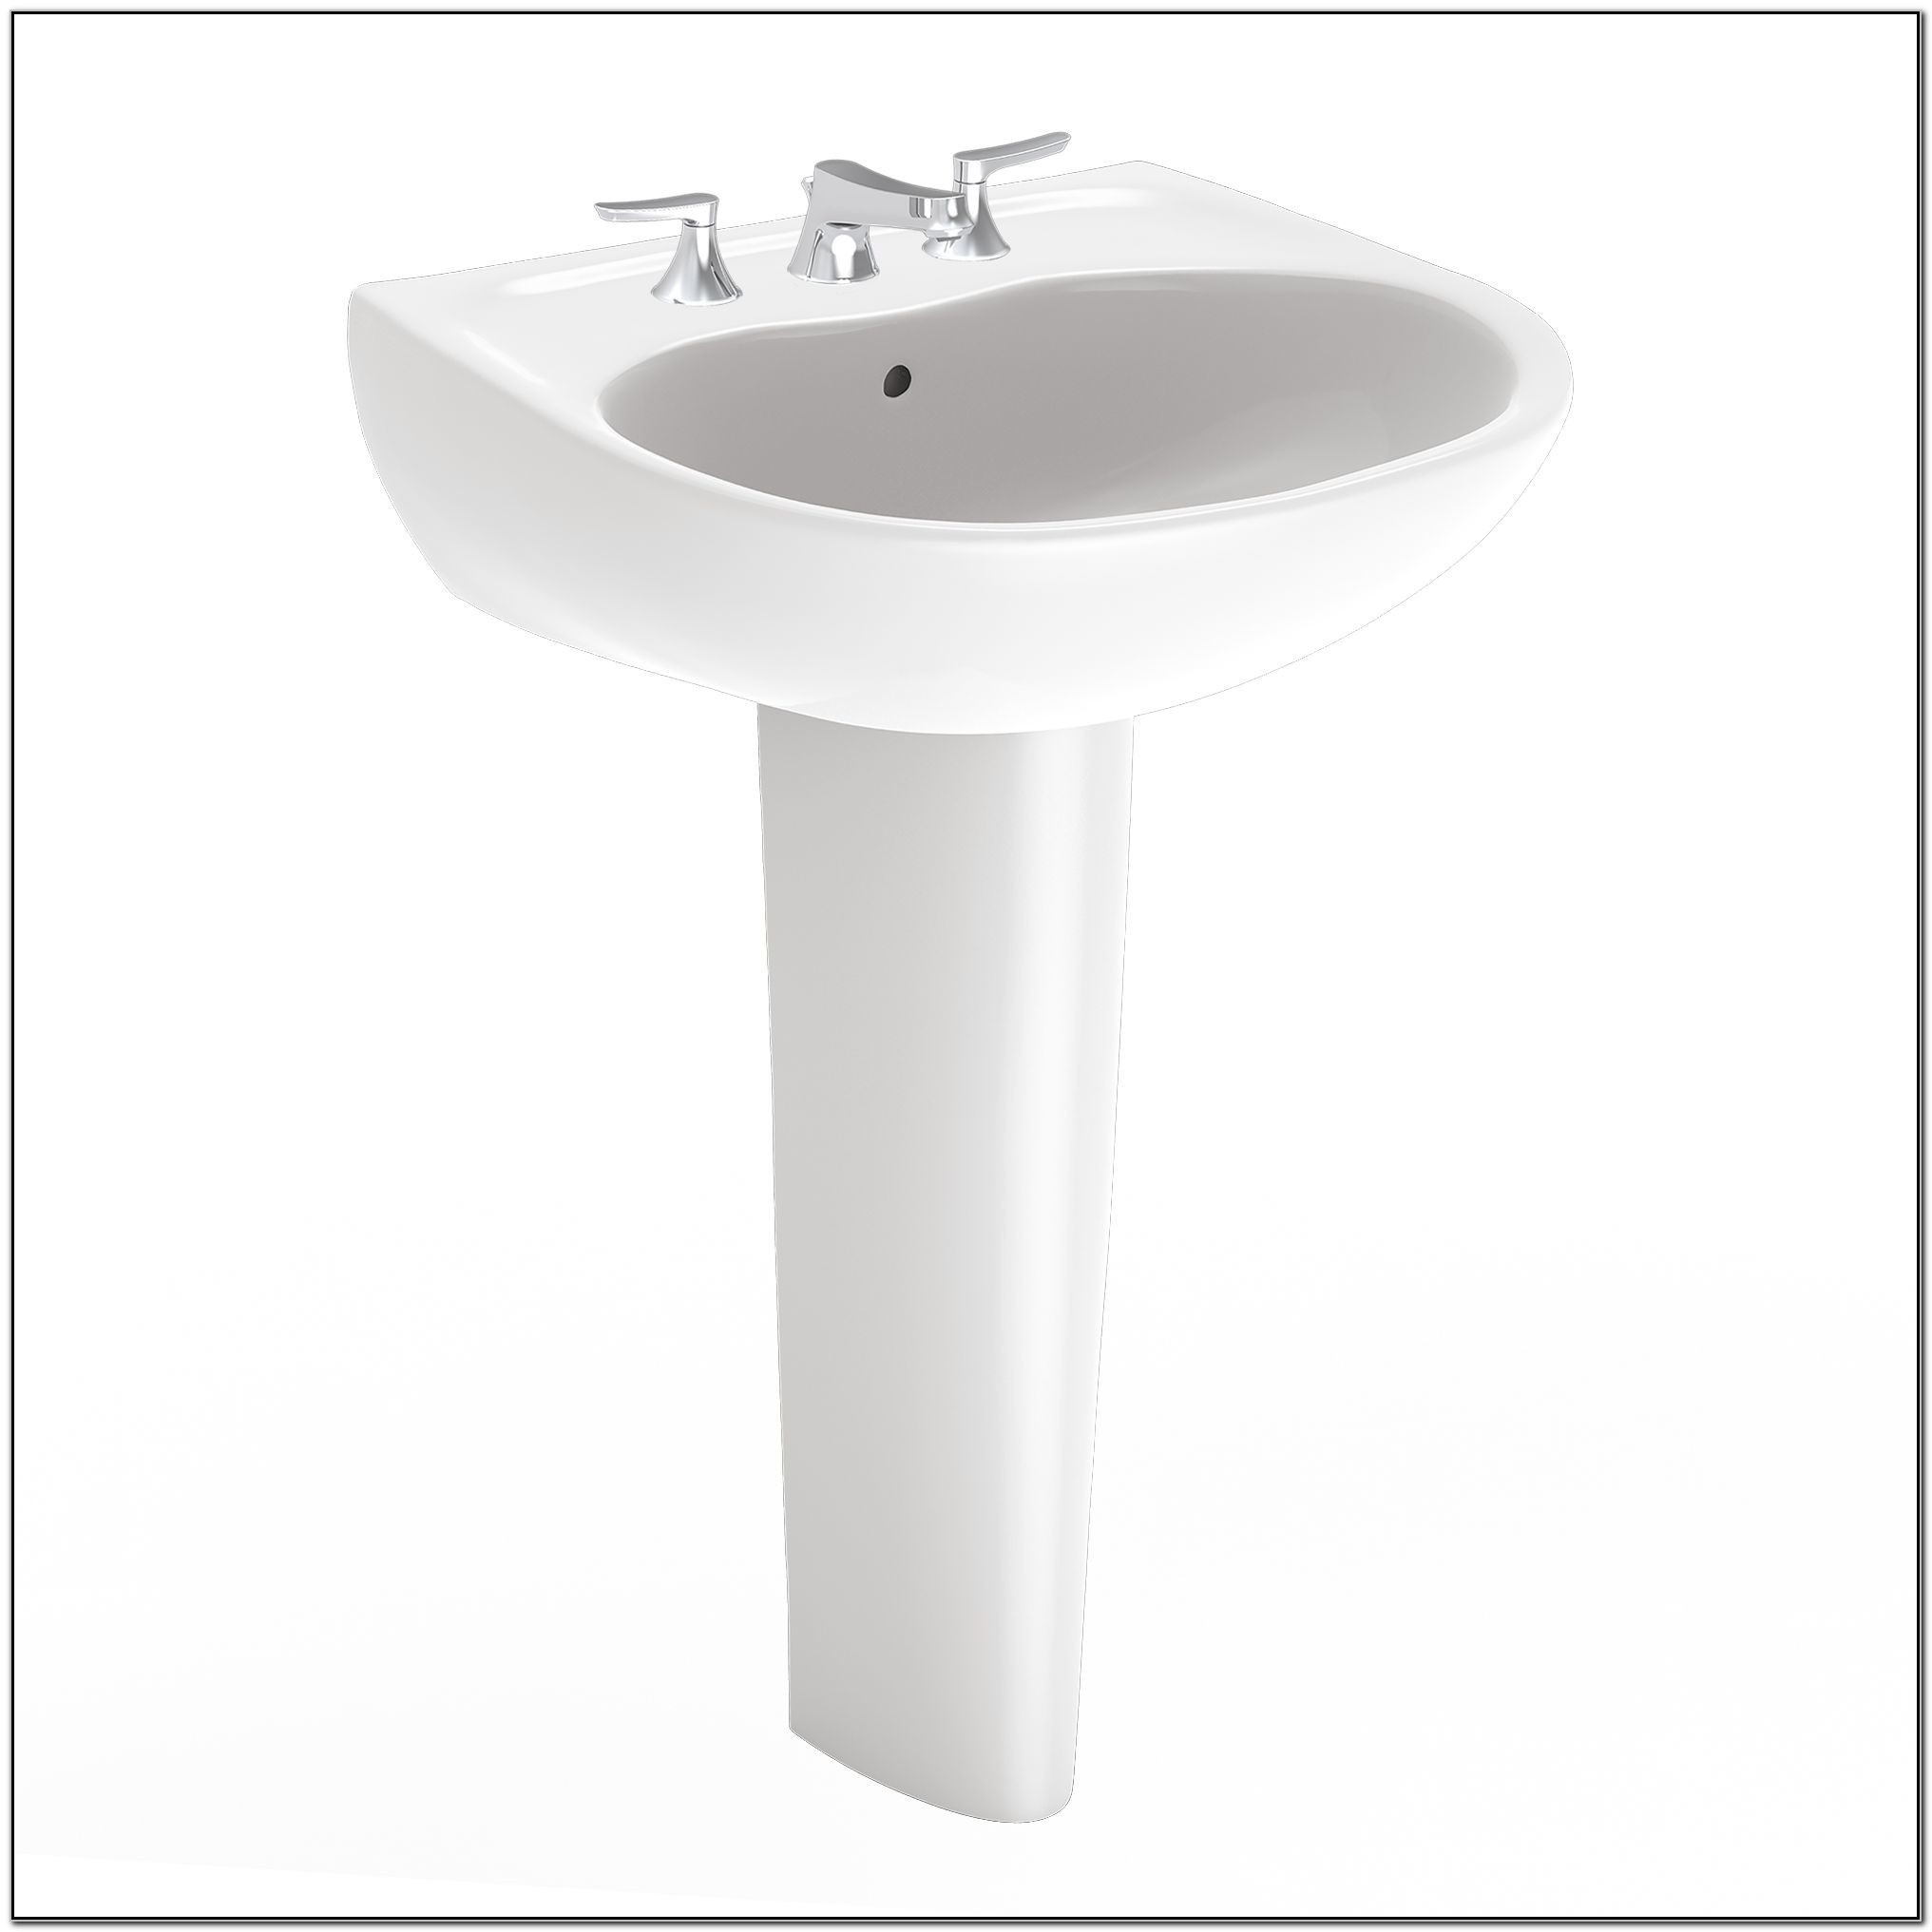 Toto Supreme Wall Mount Sink